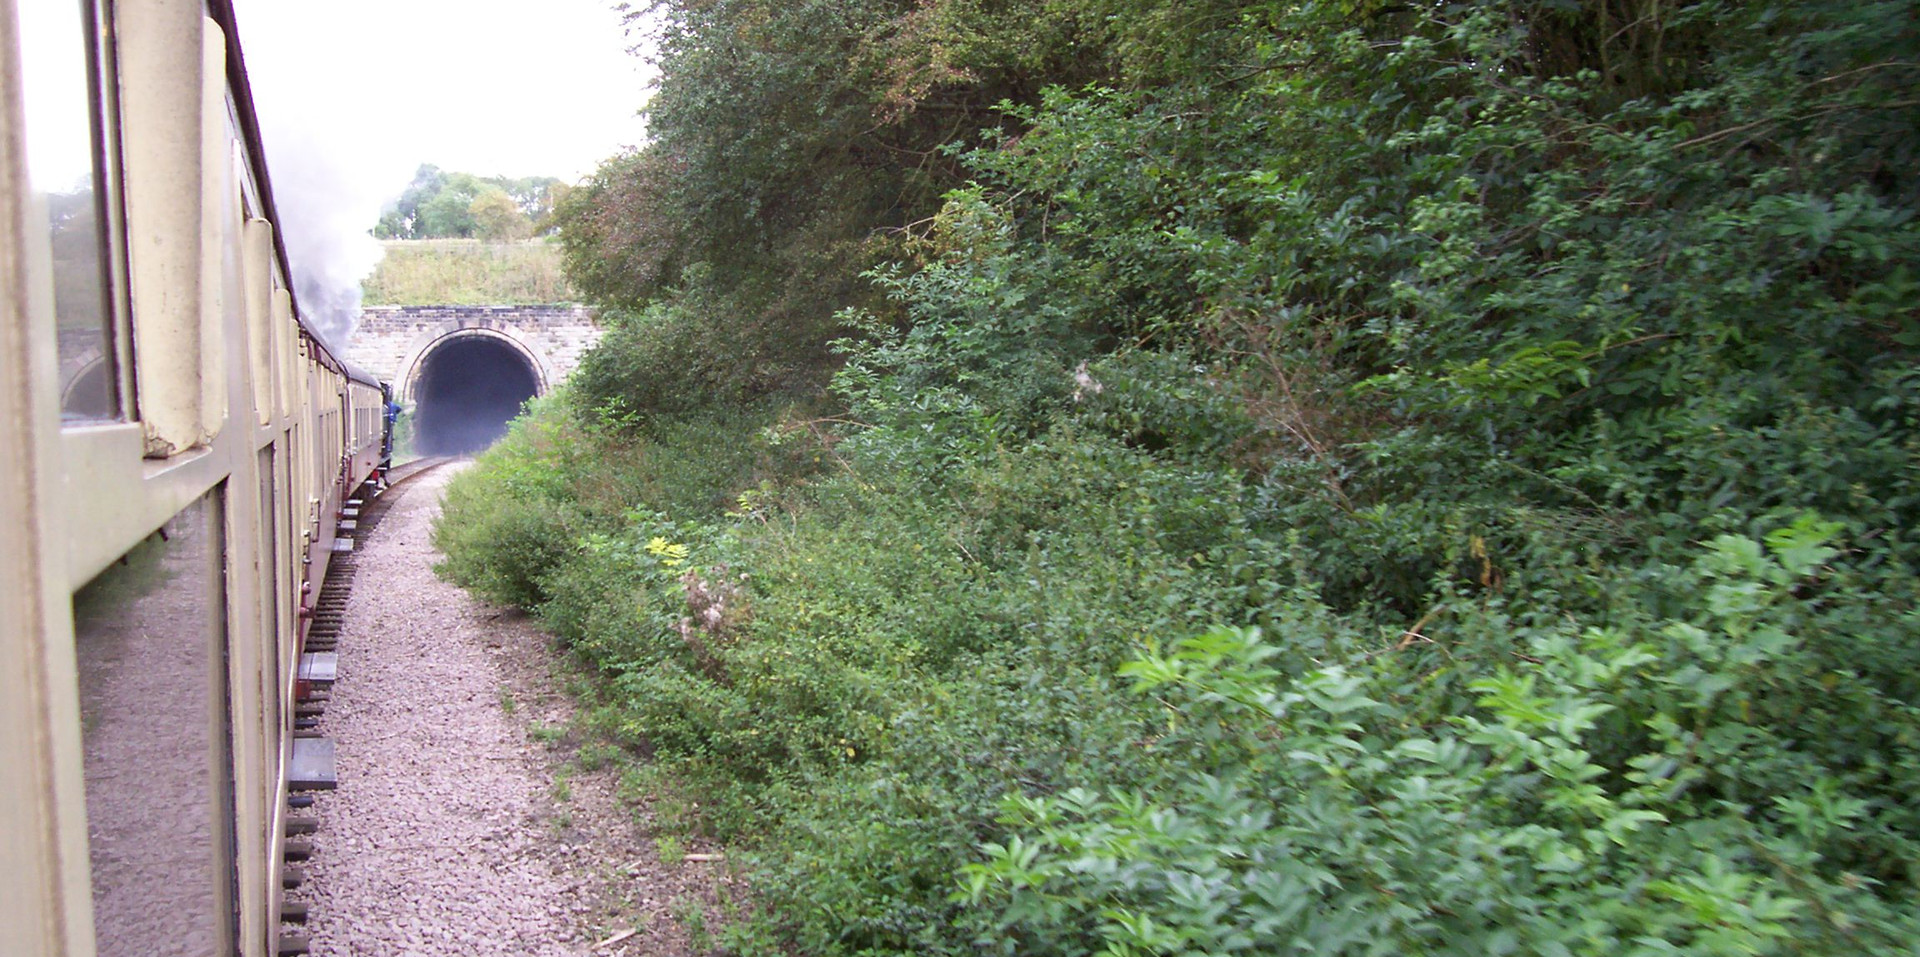 Approach to Wansford Tunnel